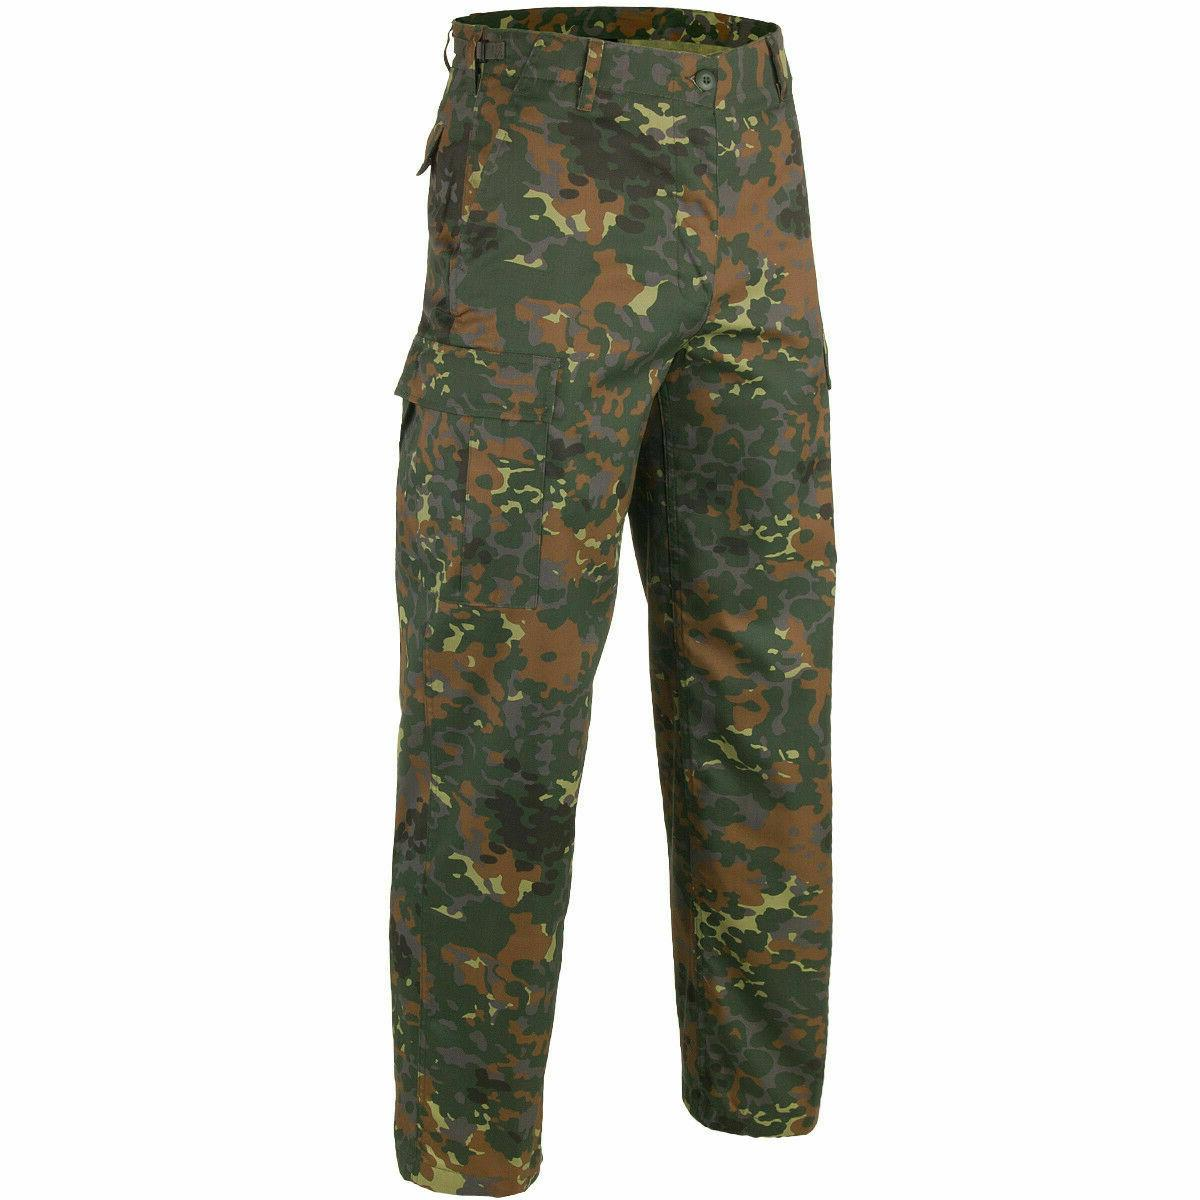 GERMAN CAMOUFLAGE PANTS MILITARY BDU POCKET